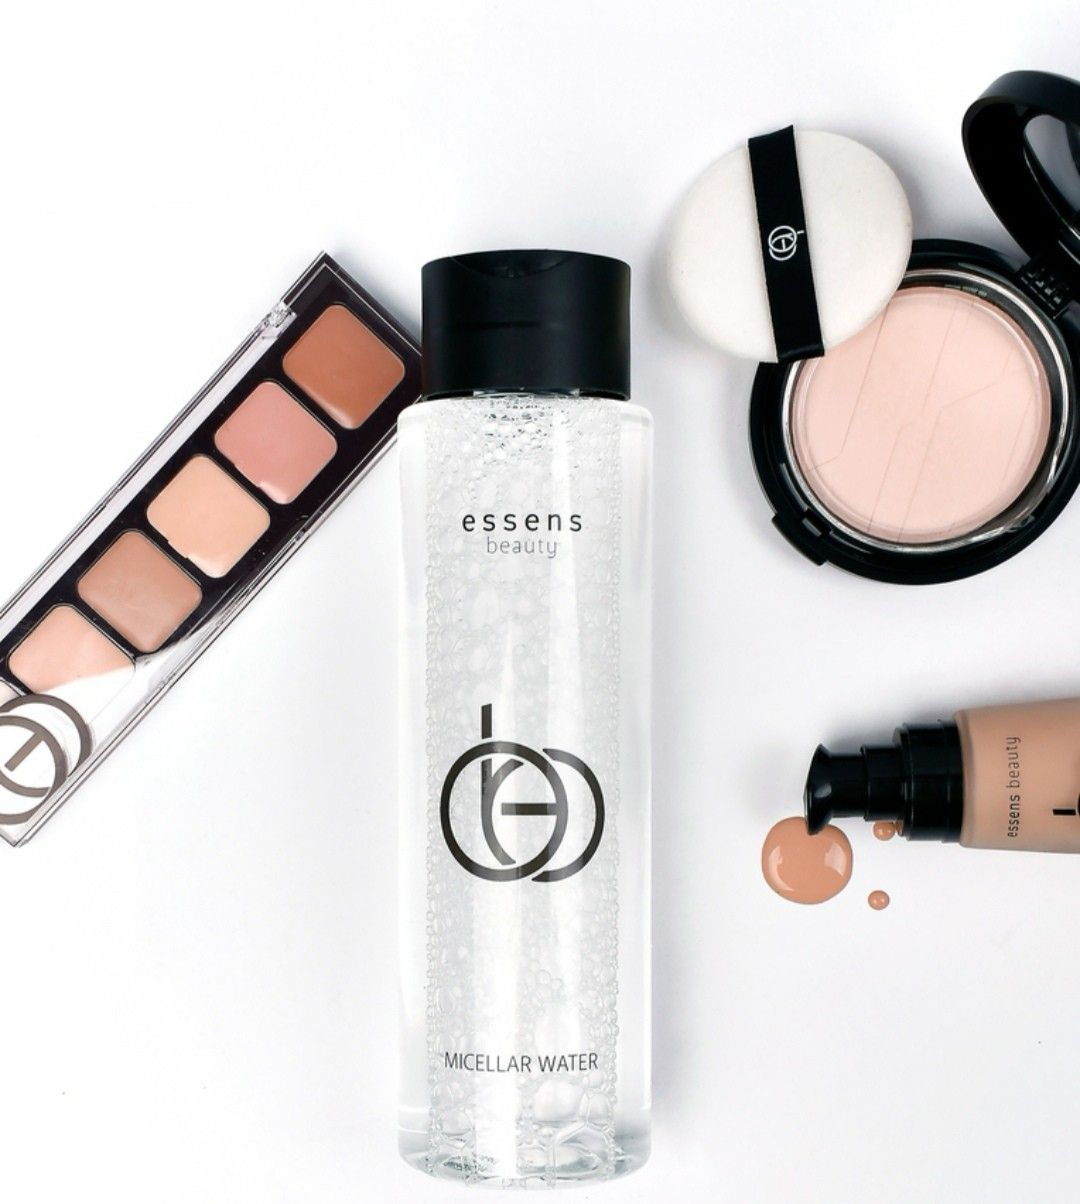 everything you need beautiful makeup inspired by chanel